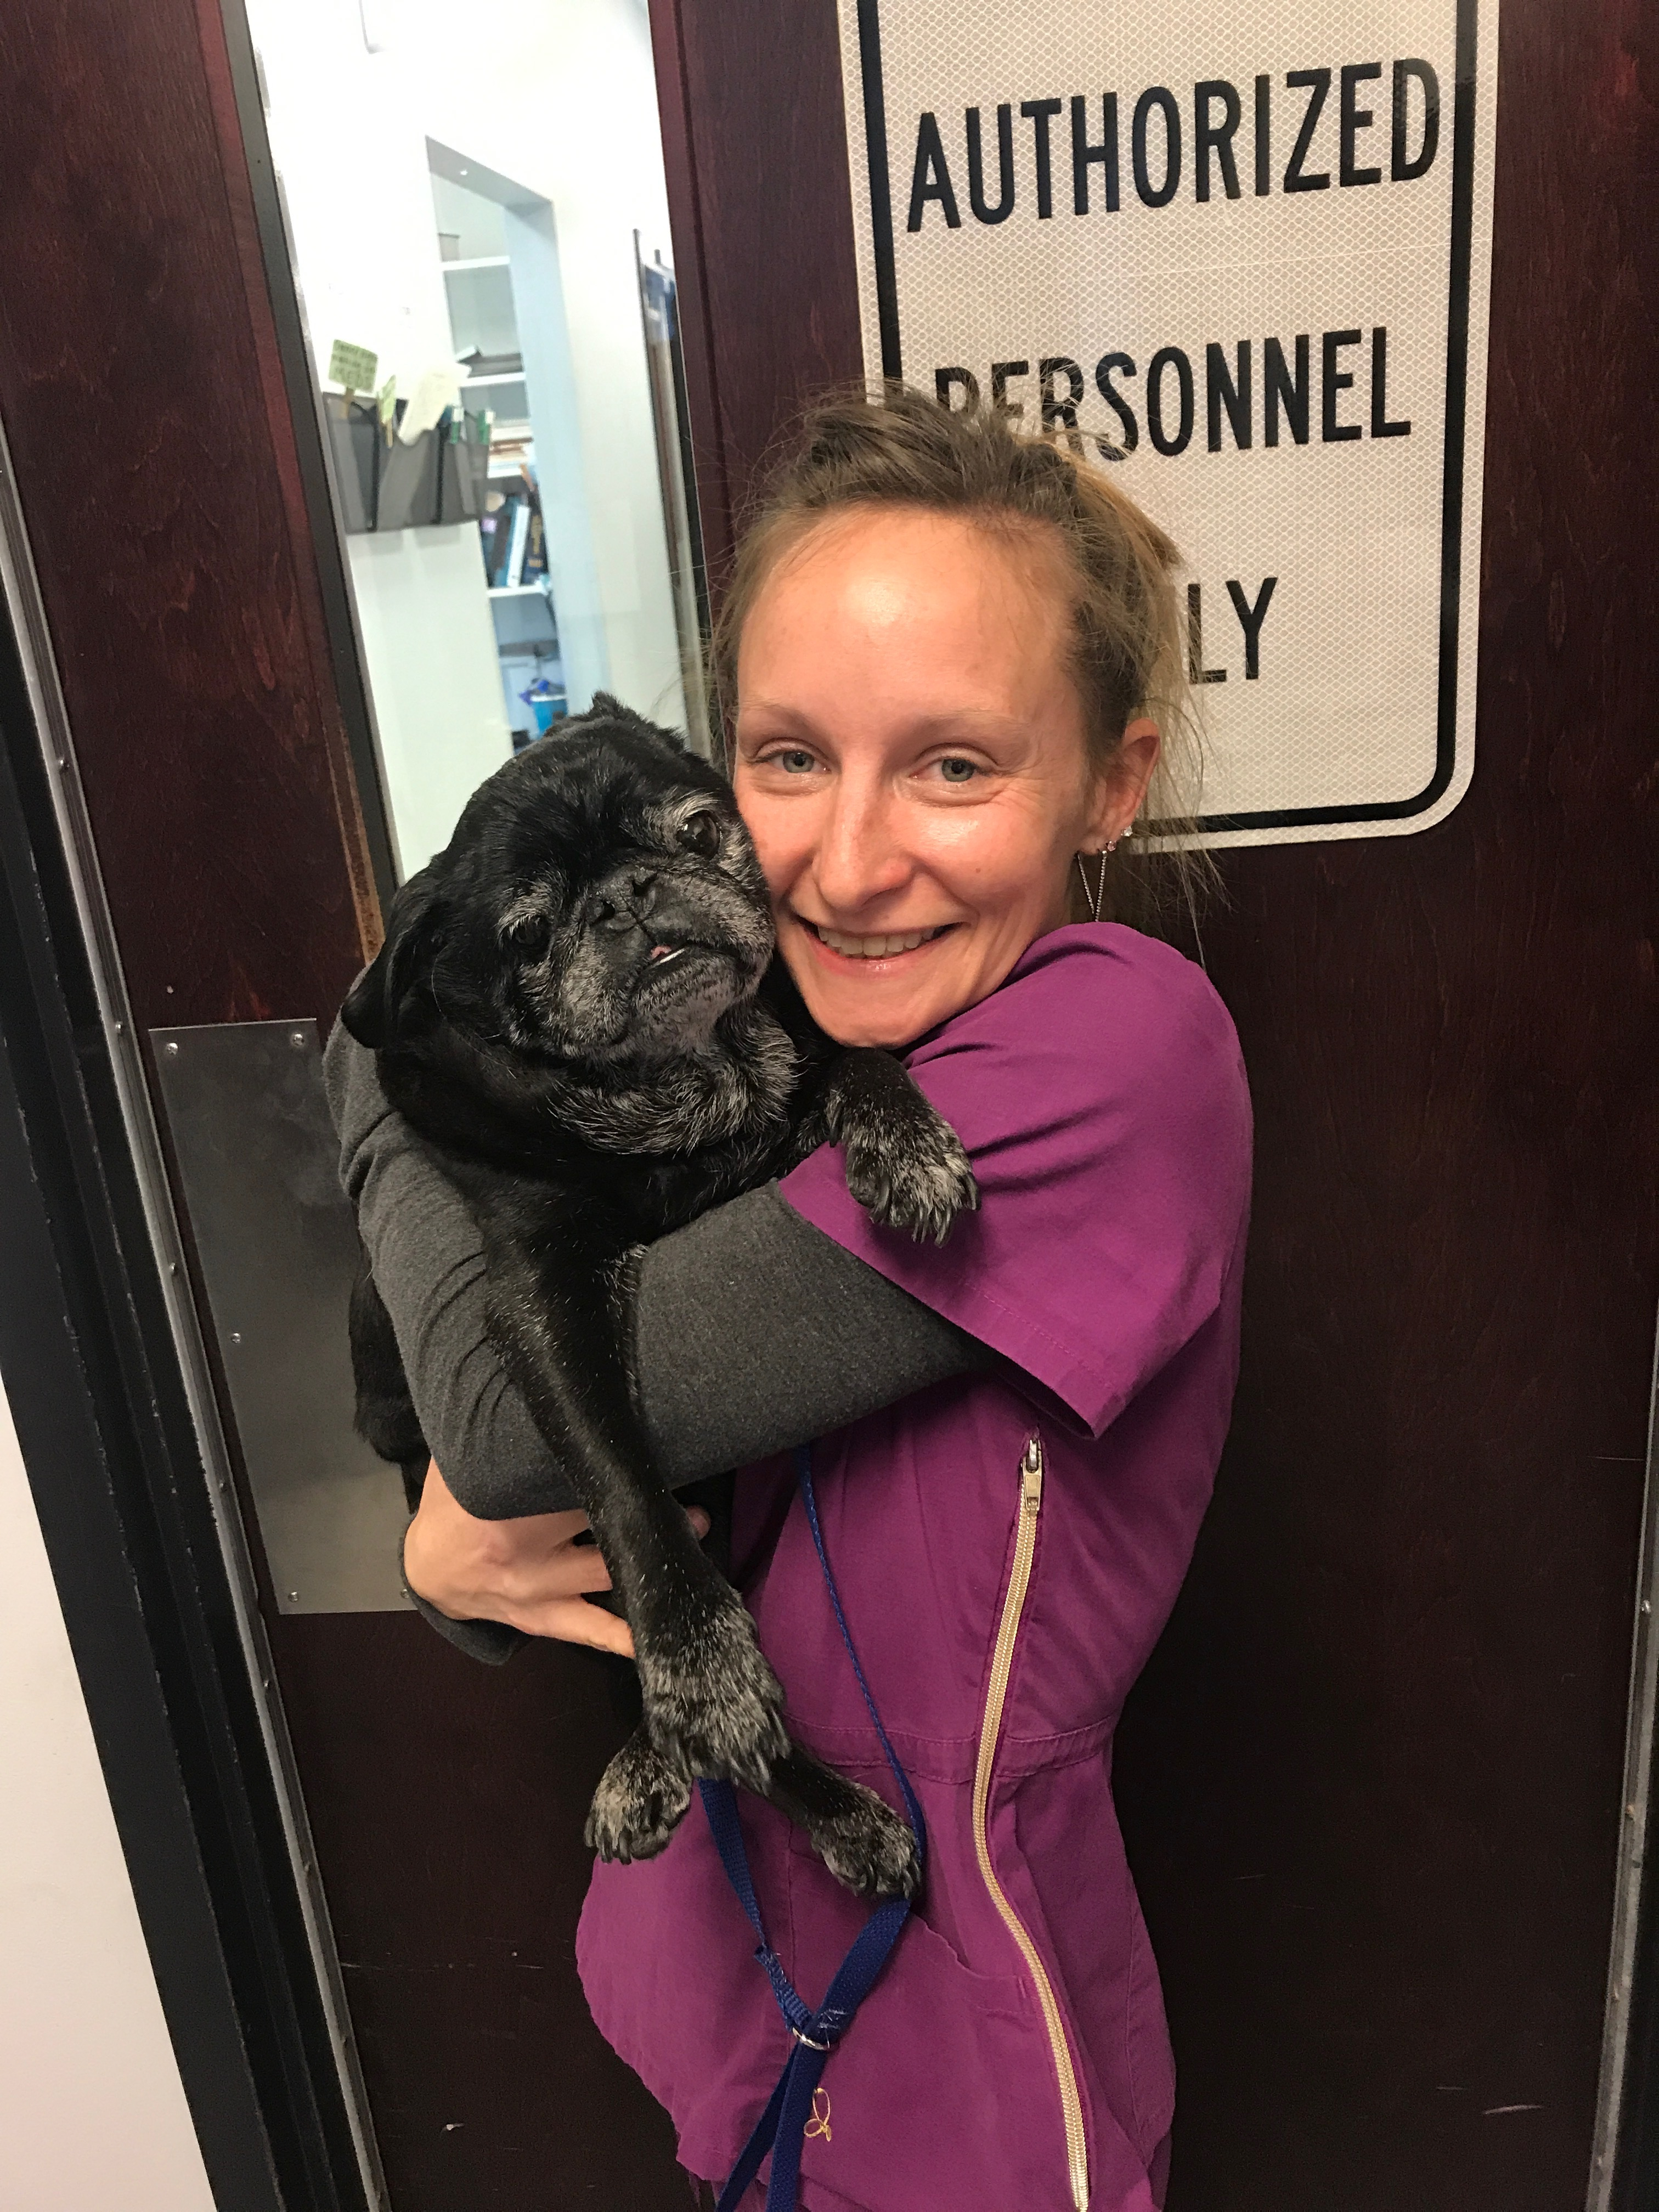 Megan (one of our technicians) and BooBoo